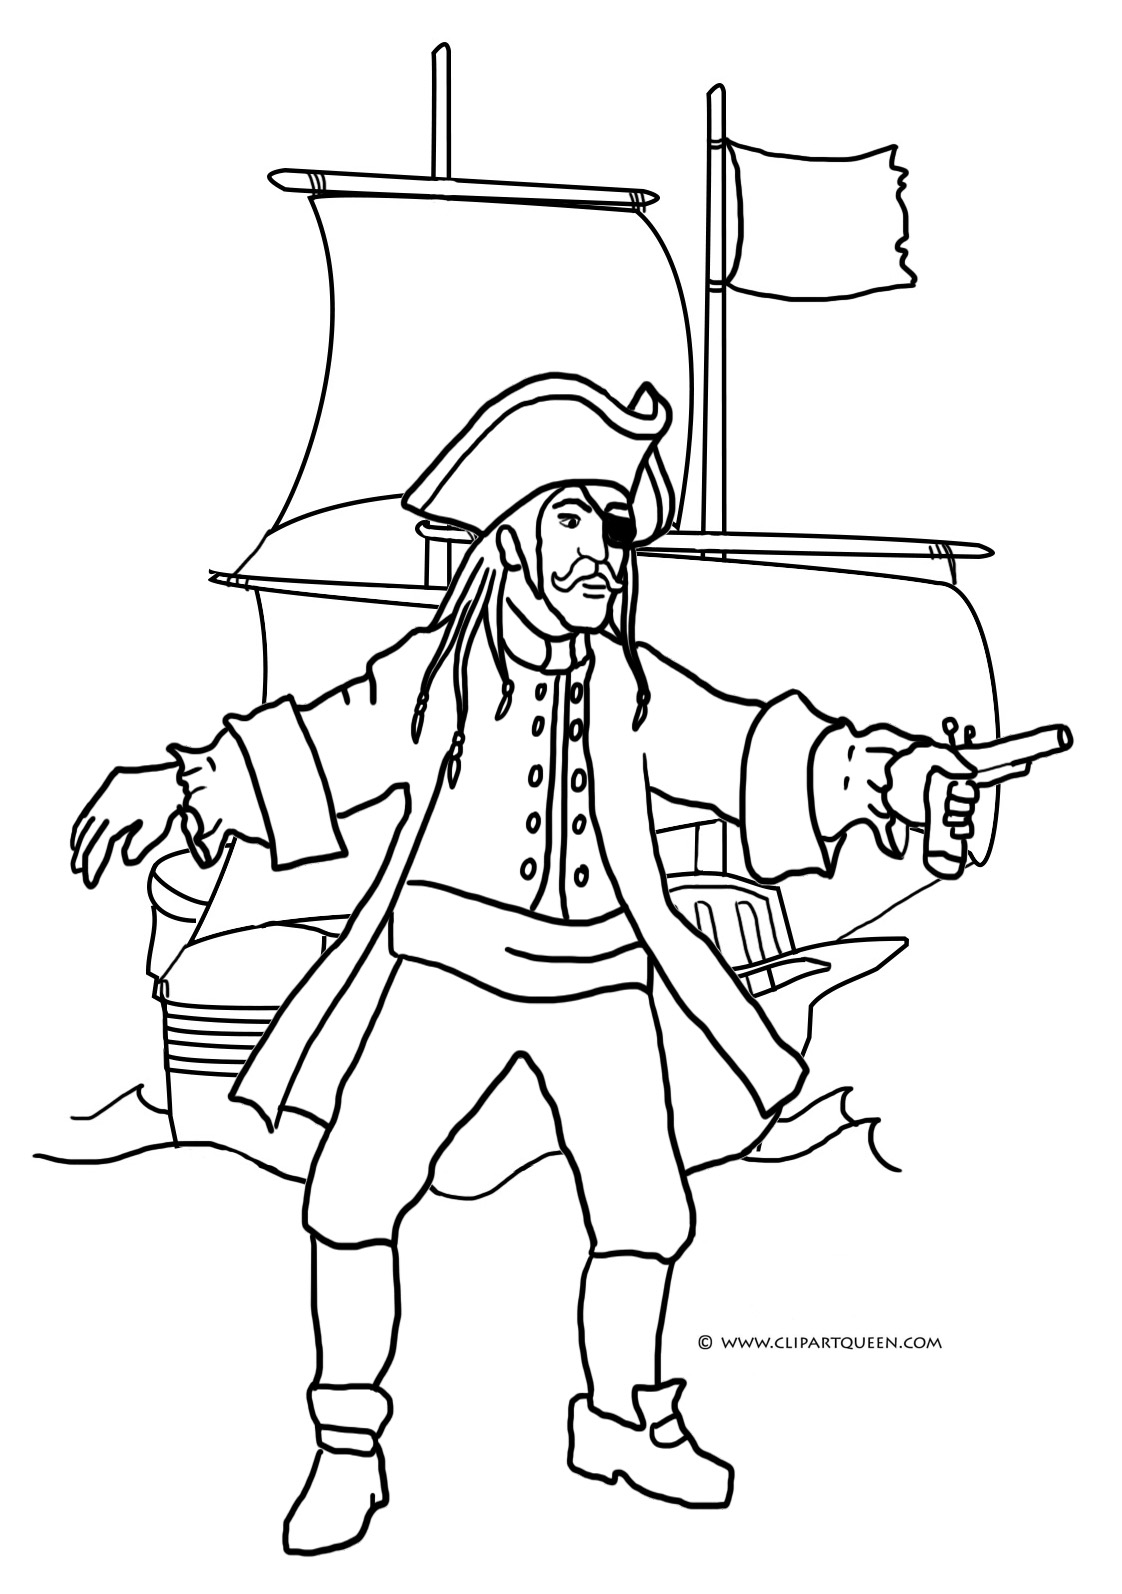 pirates coloring pages top 25 pirates coloring pages for toddlers pages coloring pirates